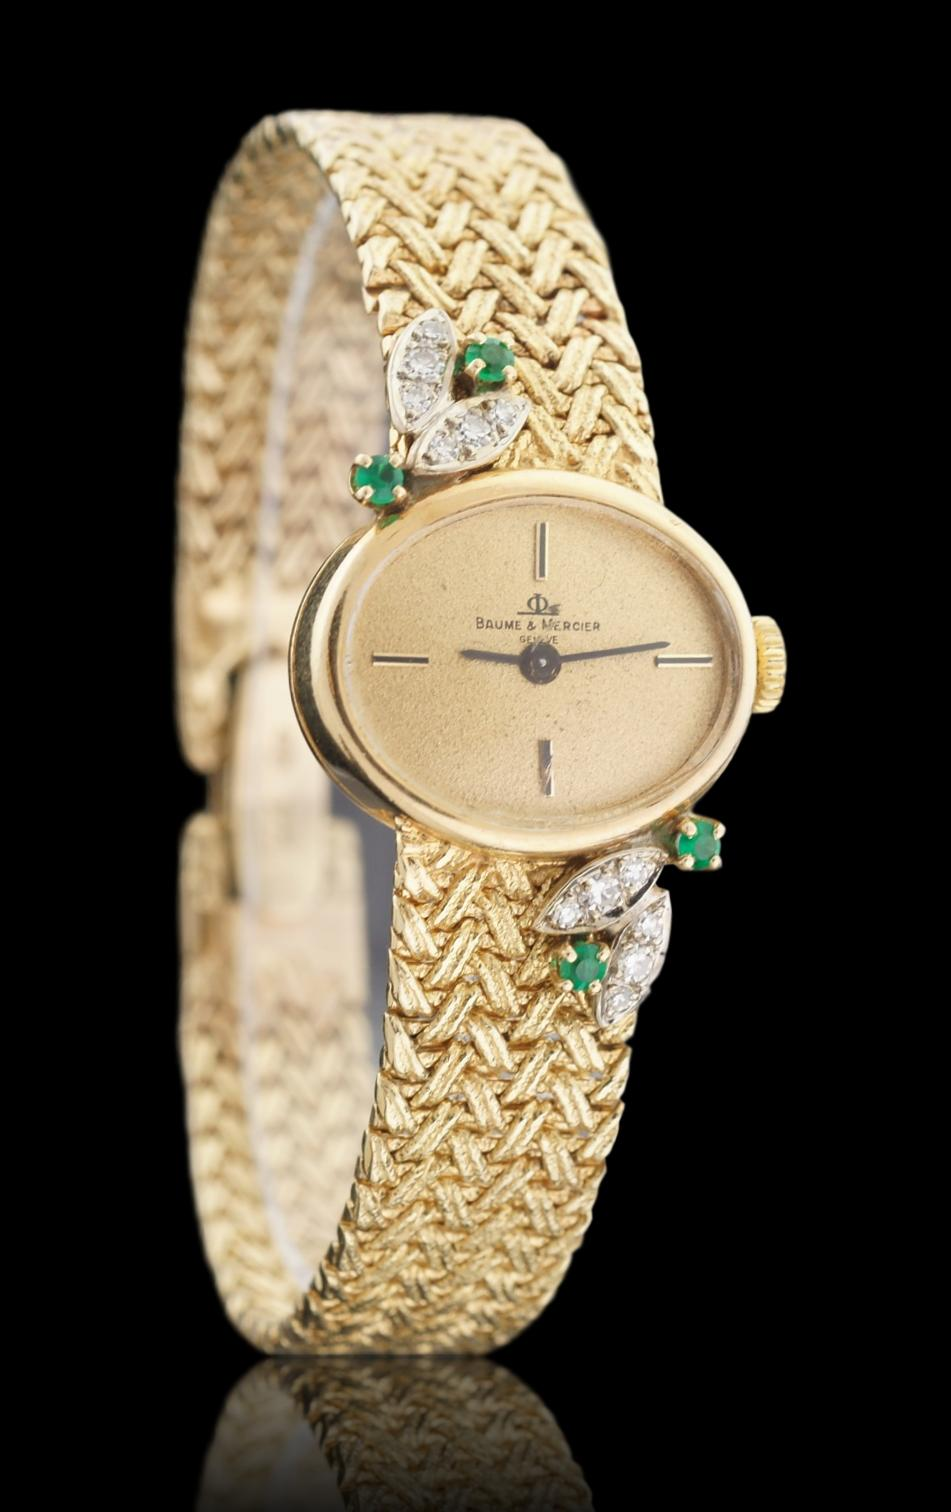 Baume & Mercier 14k Yellow Gold 1970's Ladies Watch